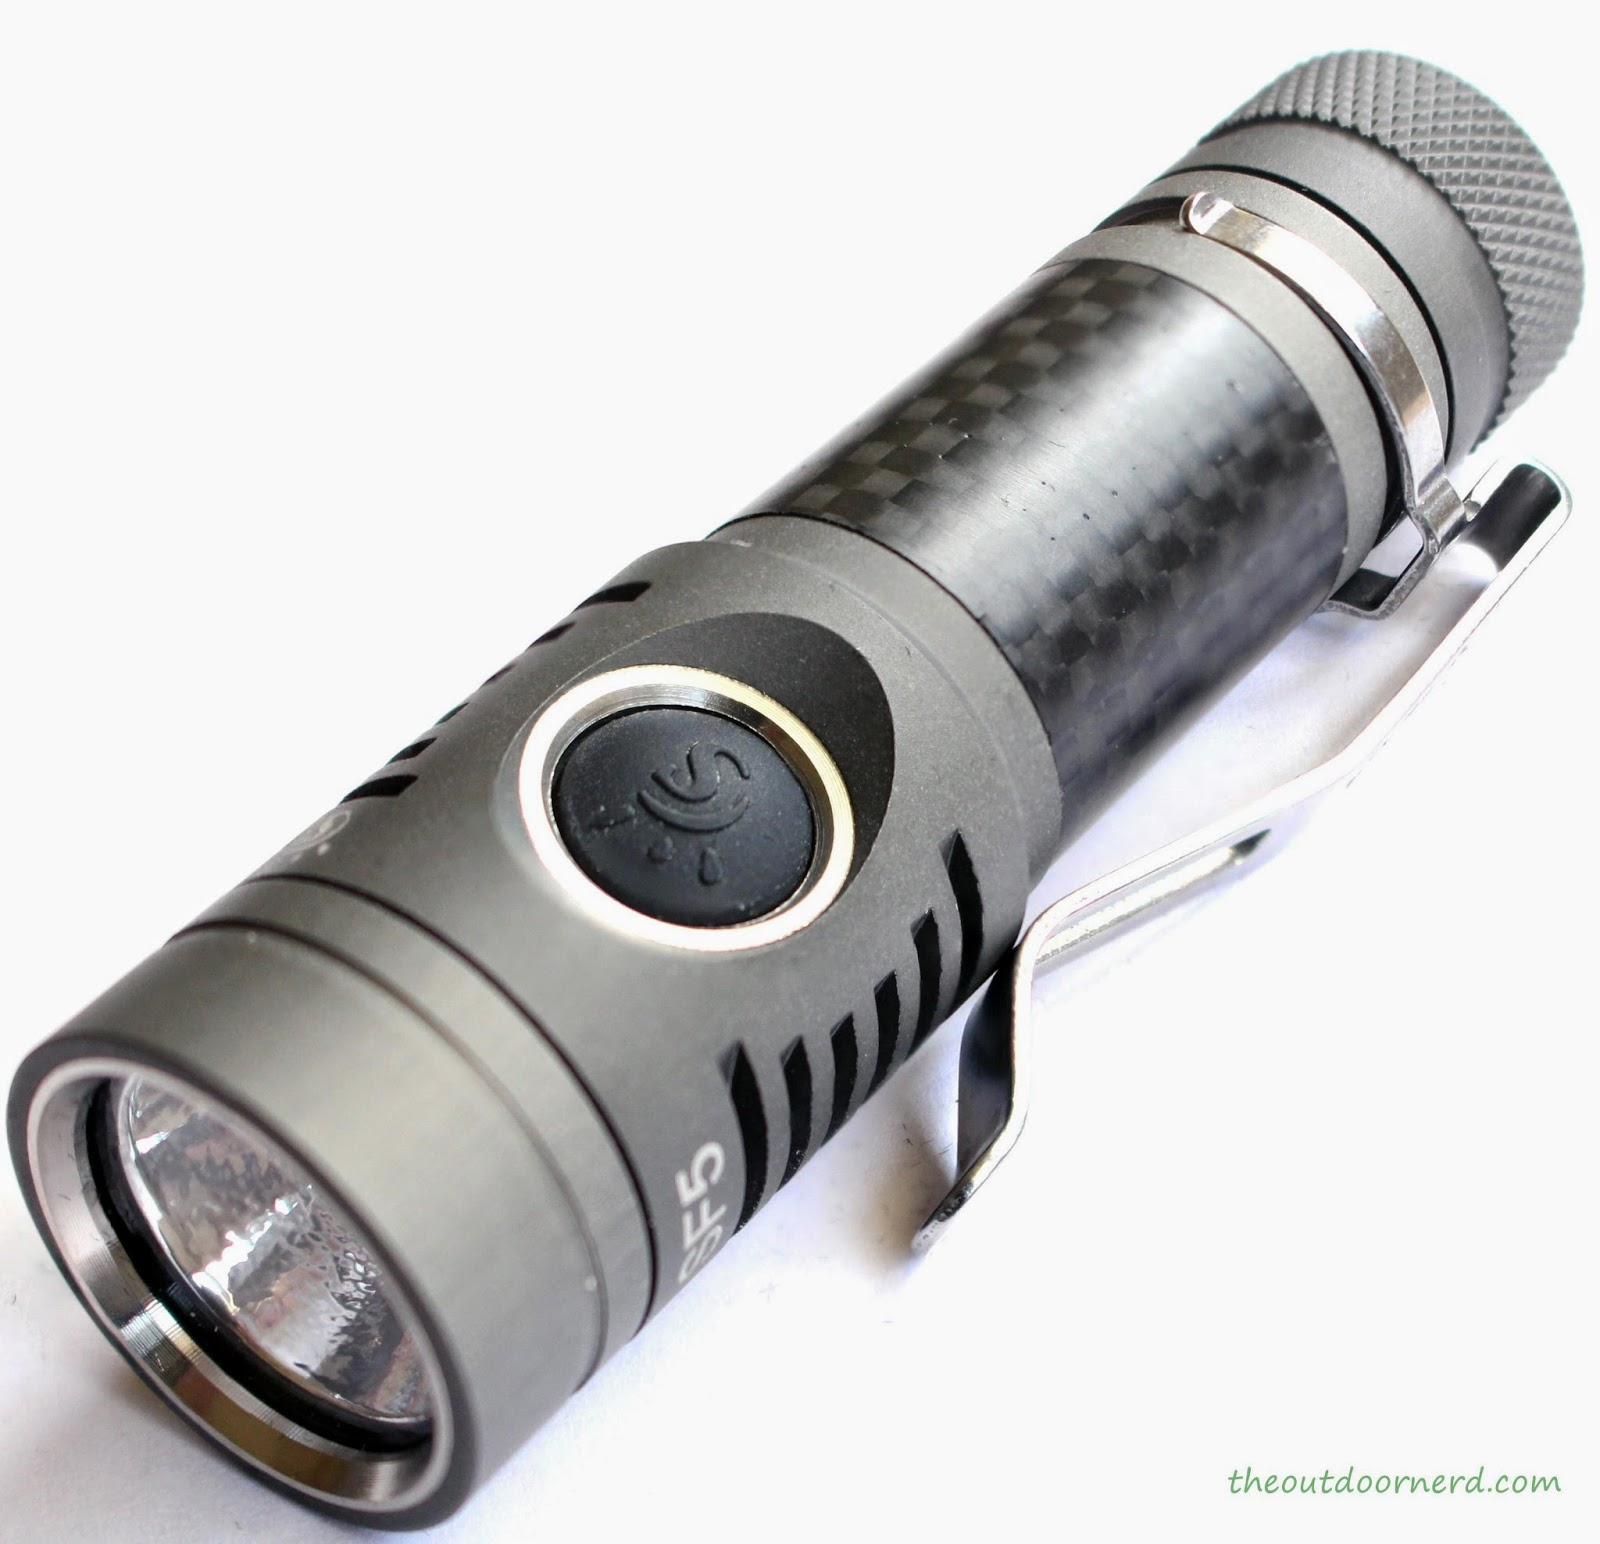 Spark SF5 1xAA Flashlight Product View 2